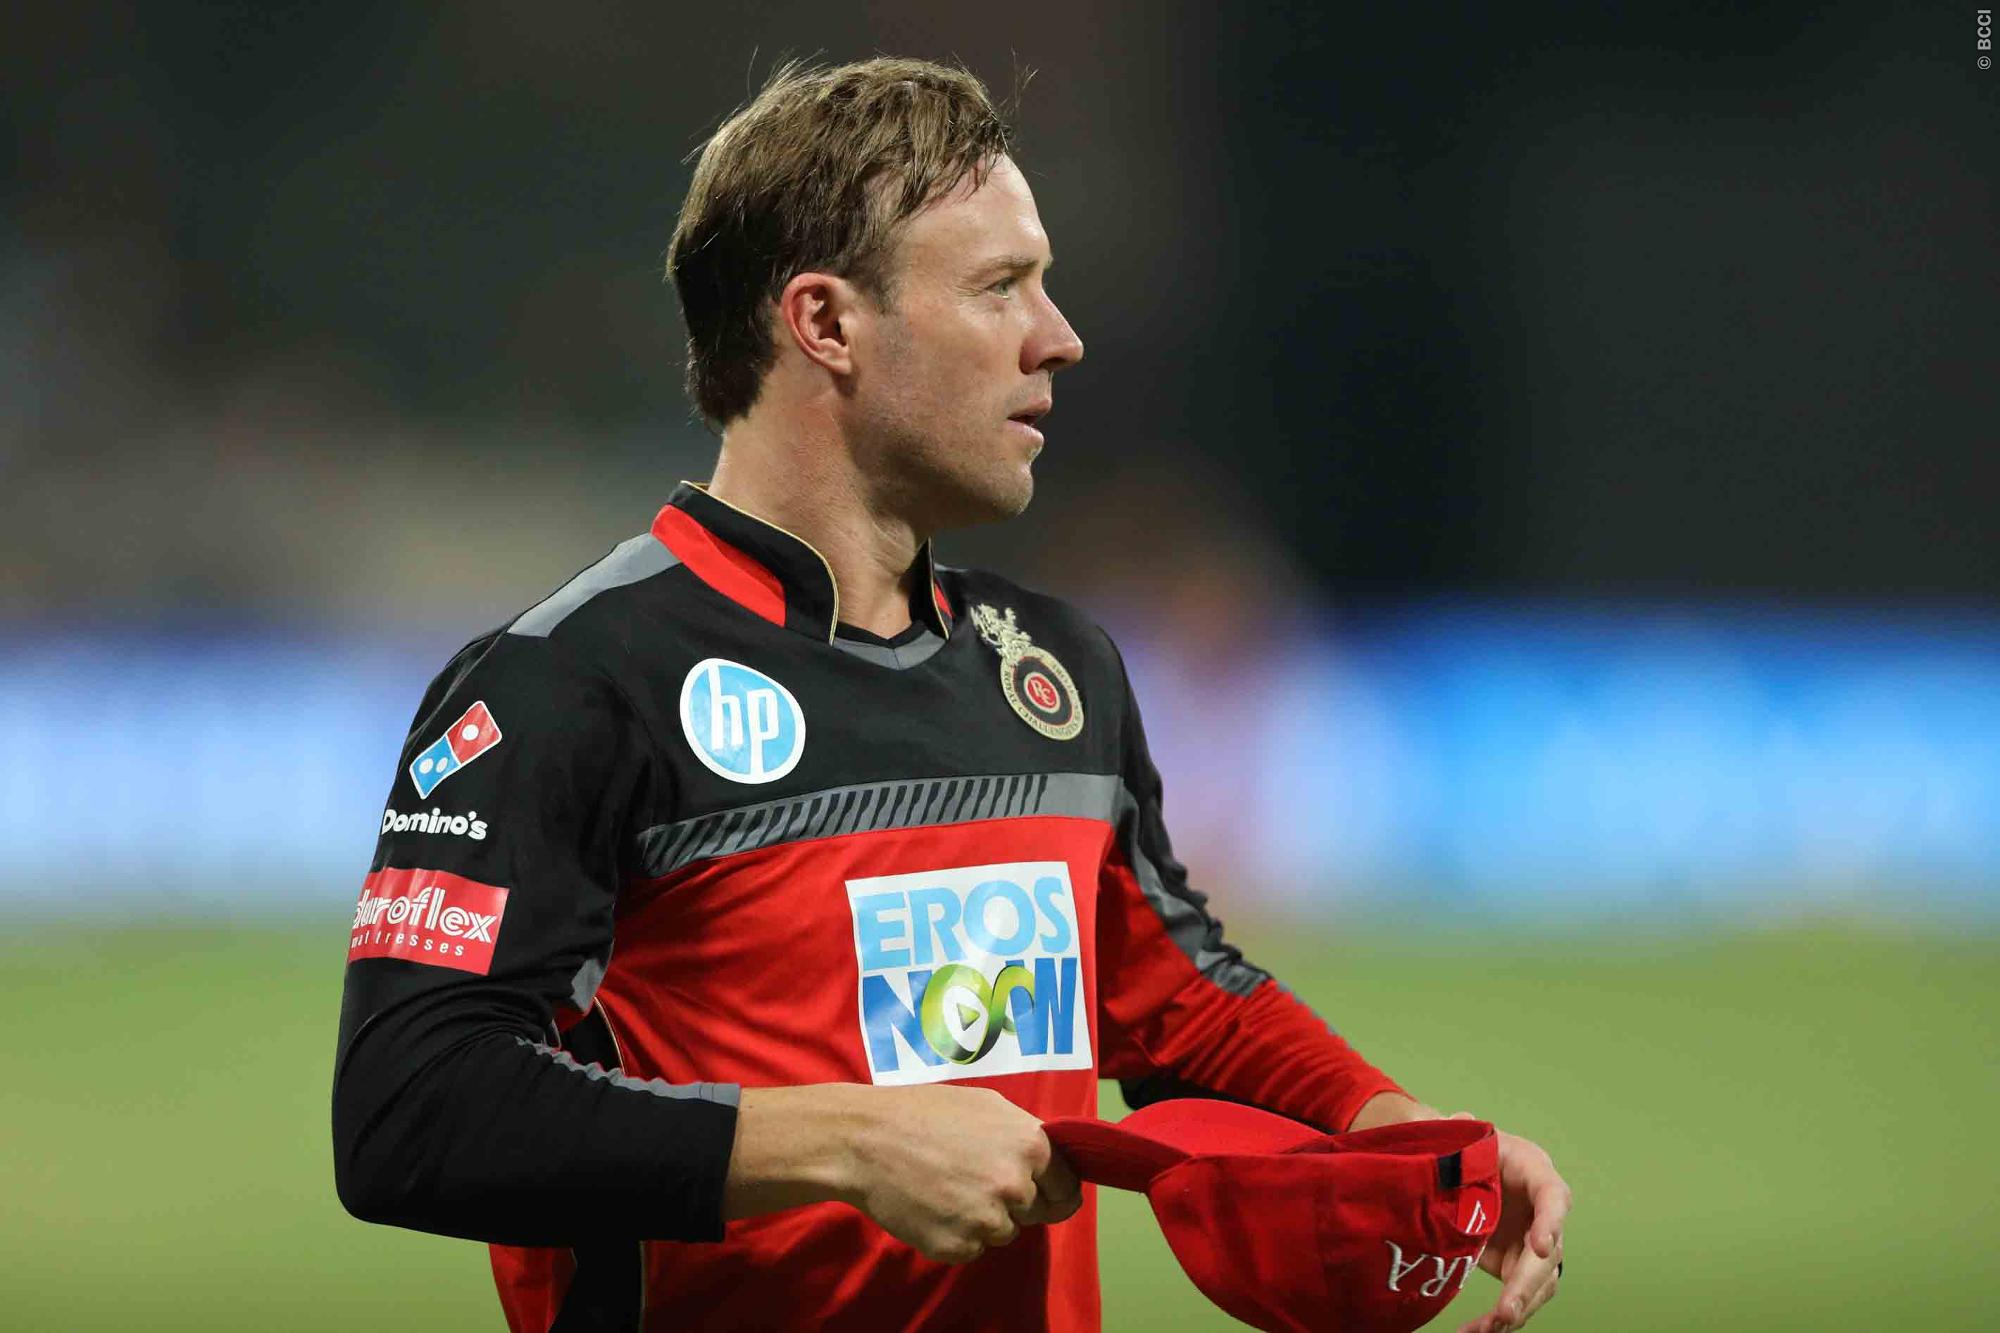 AB De Villiers Hairstyles 2019 Side Look